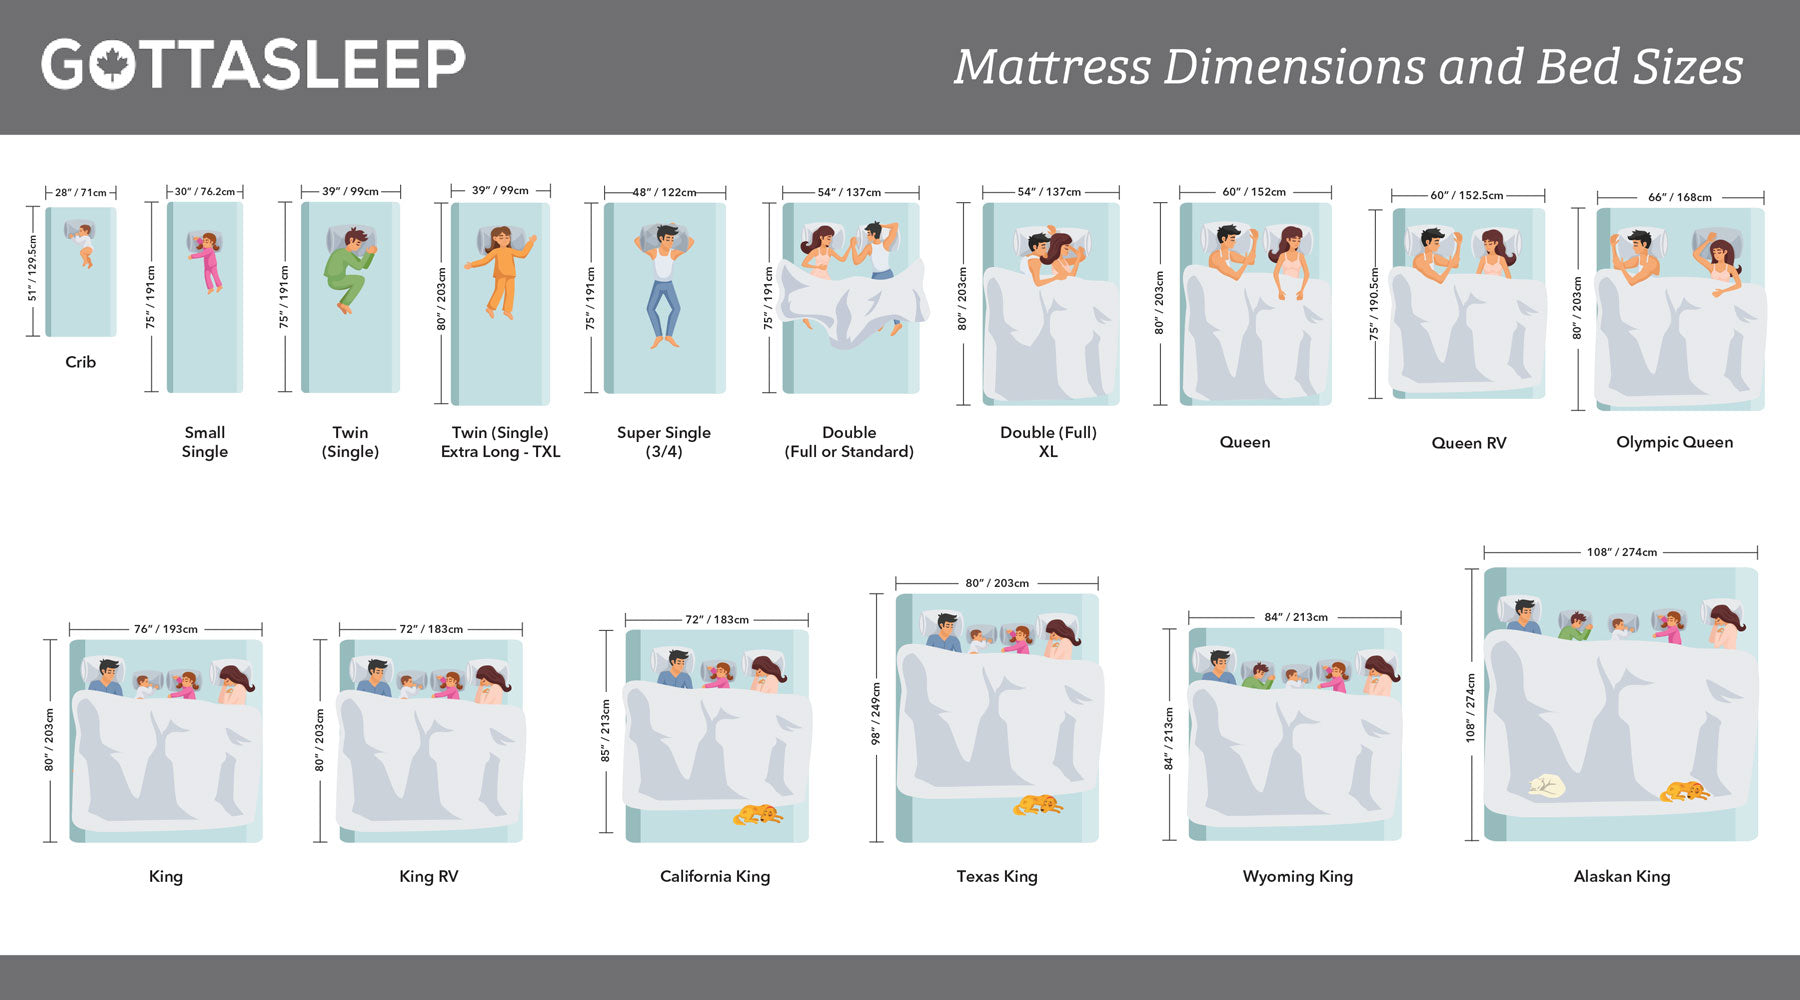 Mattress Sizes & Bed Size Dimensions Guide [2020] [Canada, USA, EU